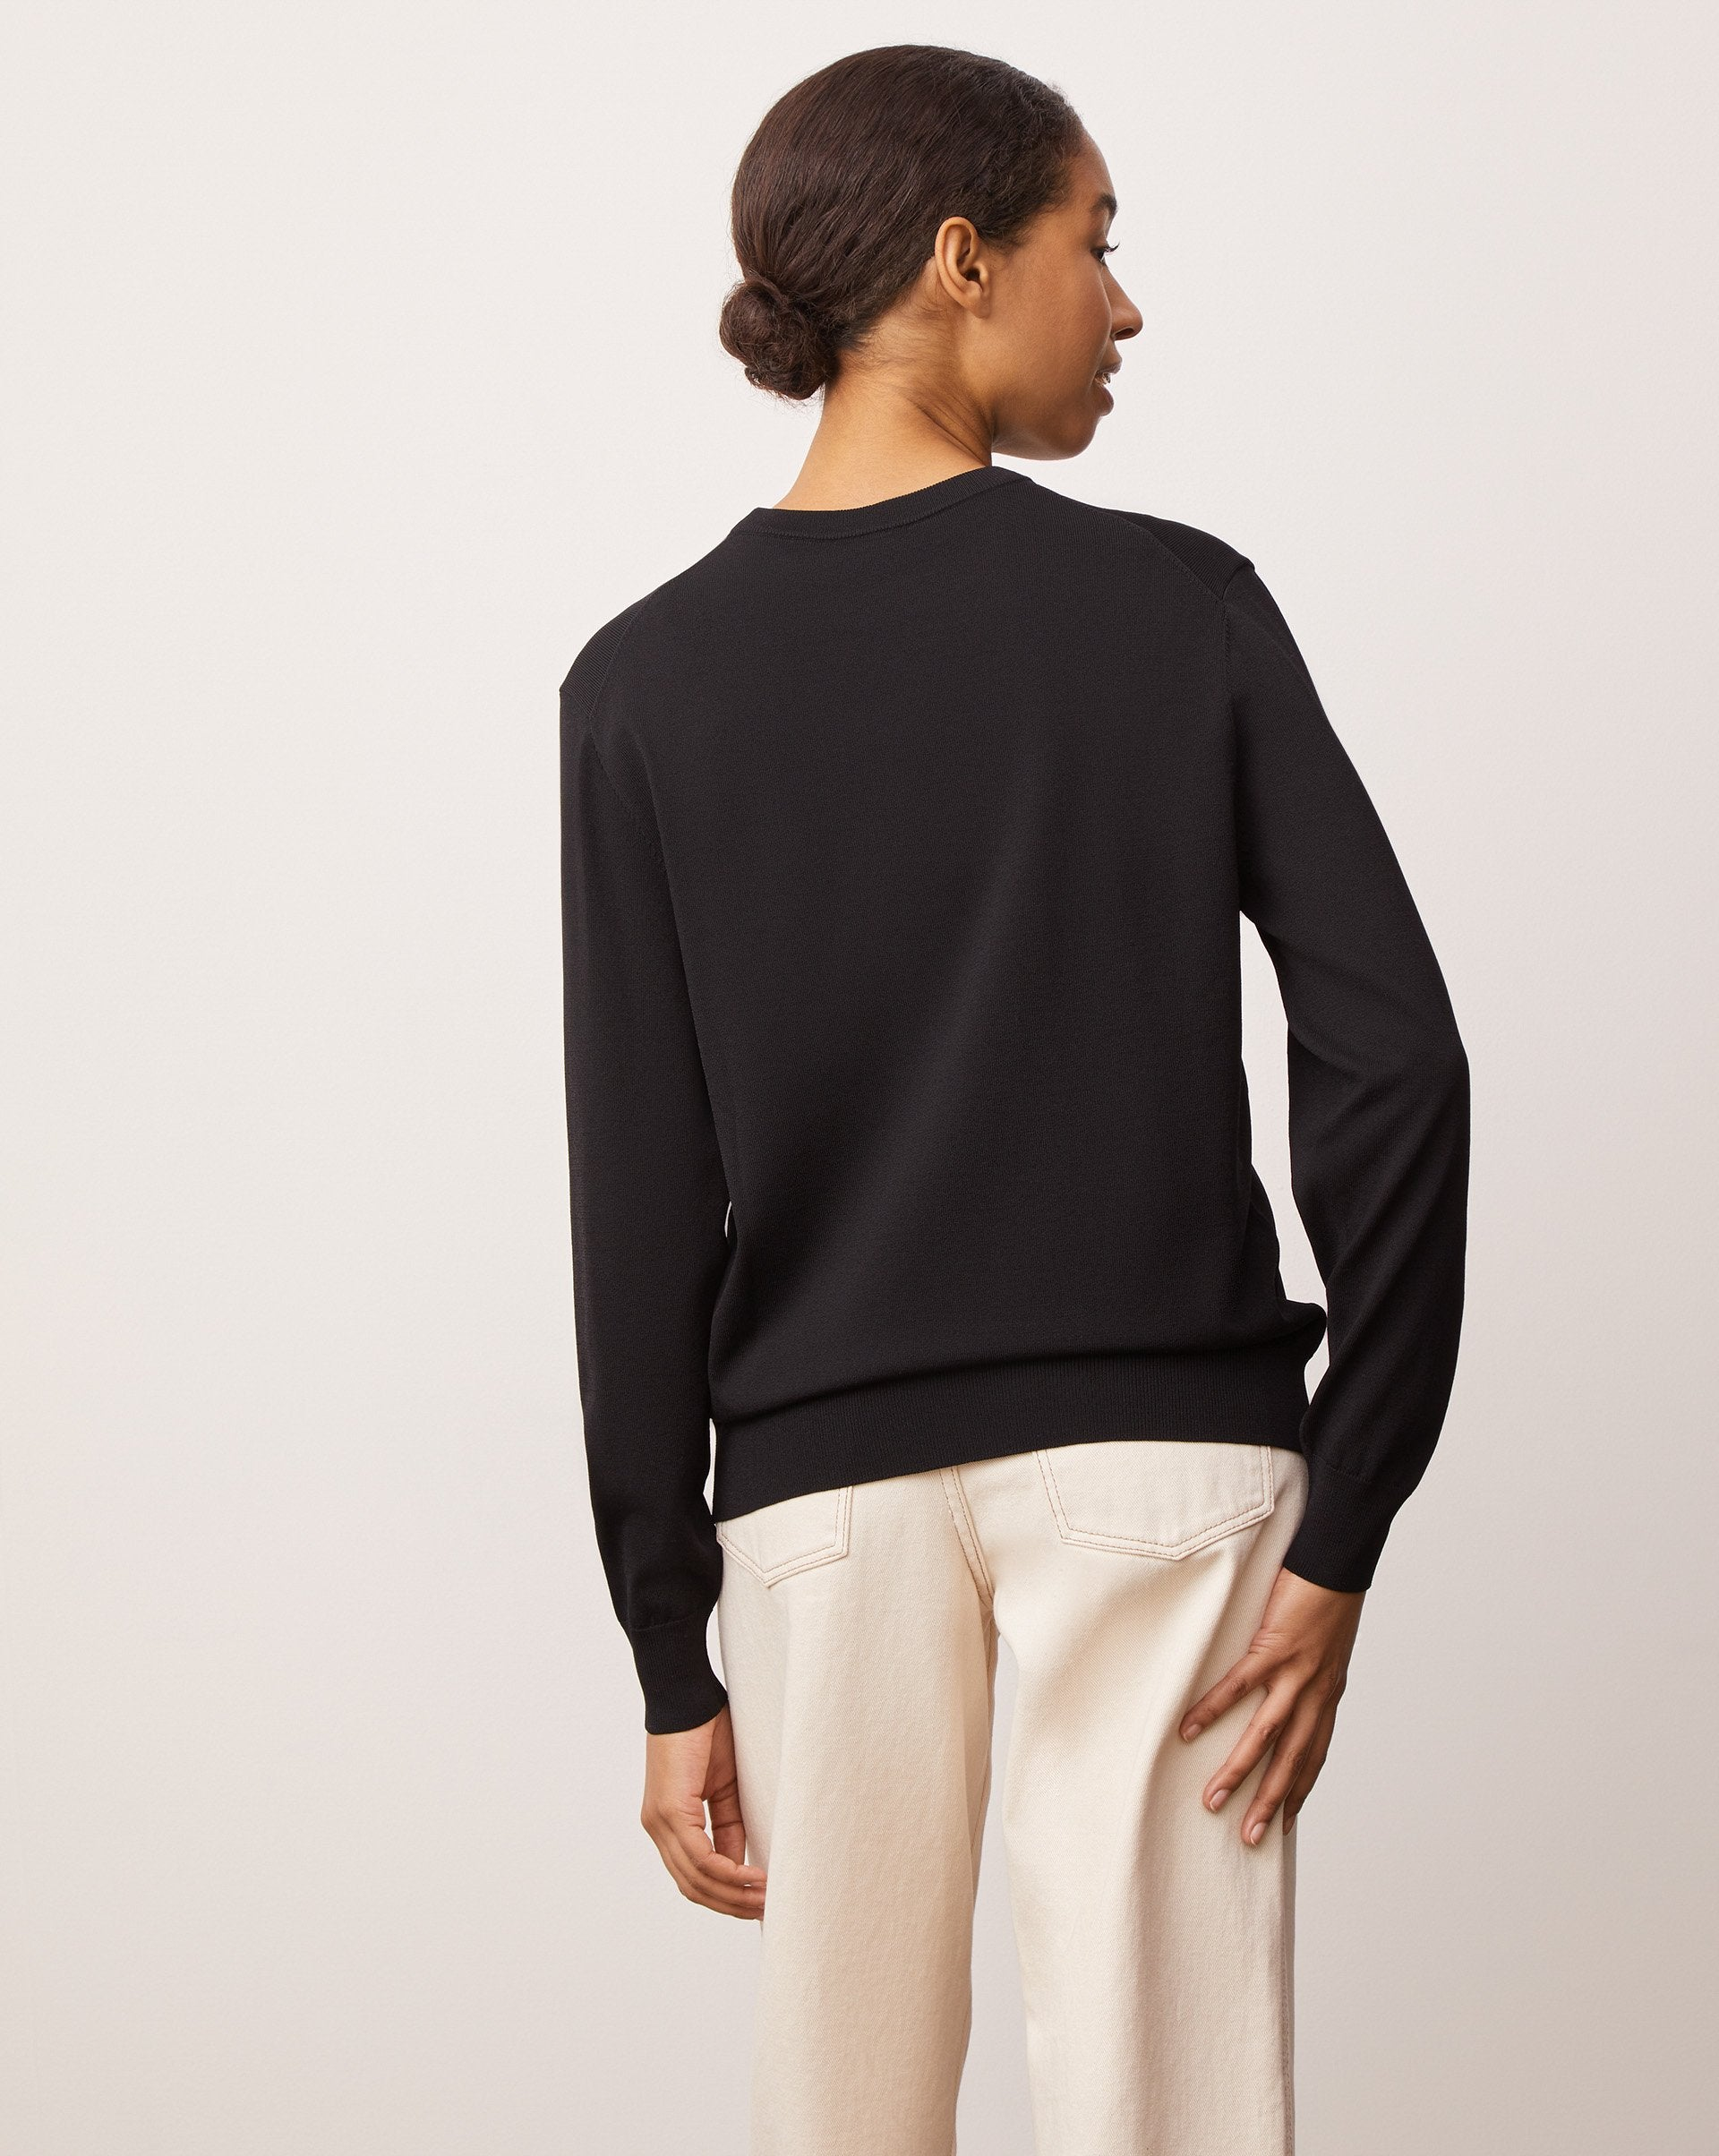 Fine knit crew neck jumper - 12 STOREEZ